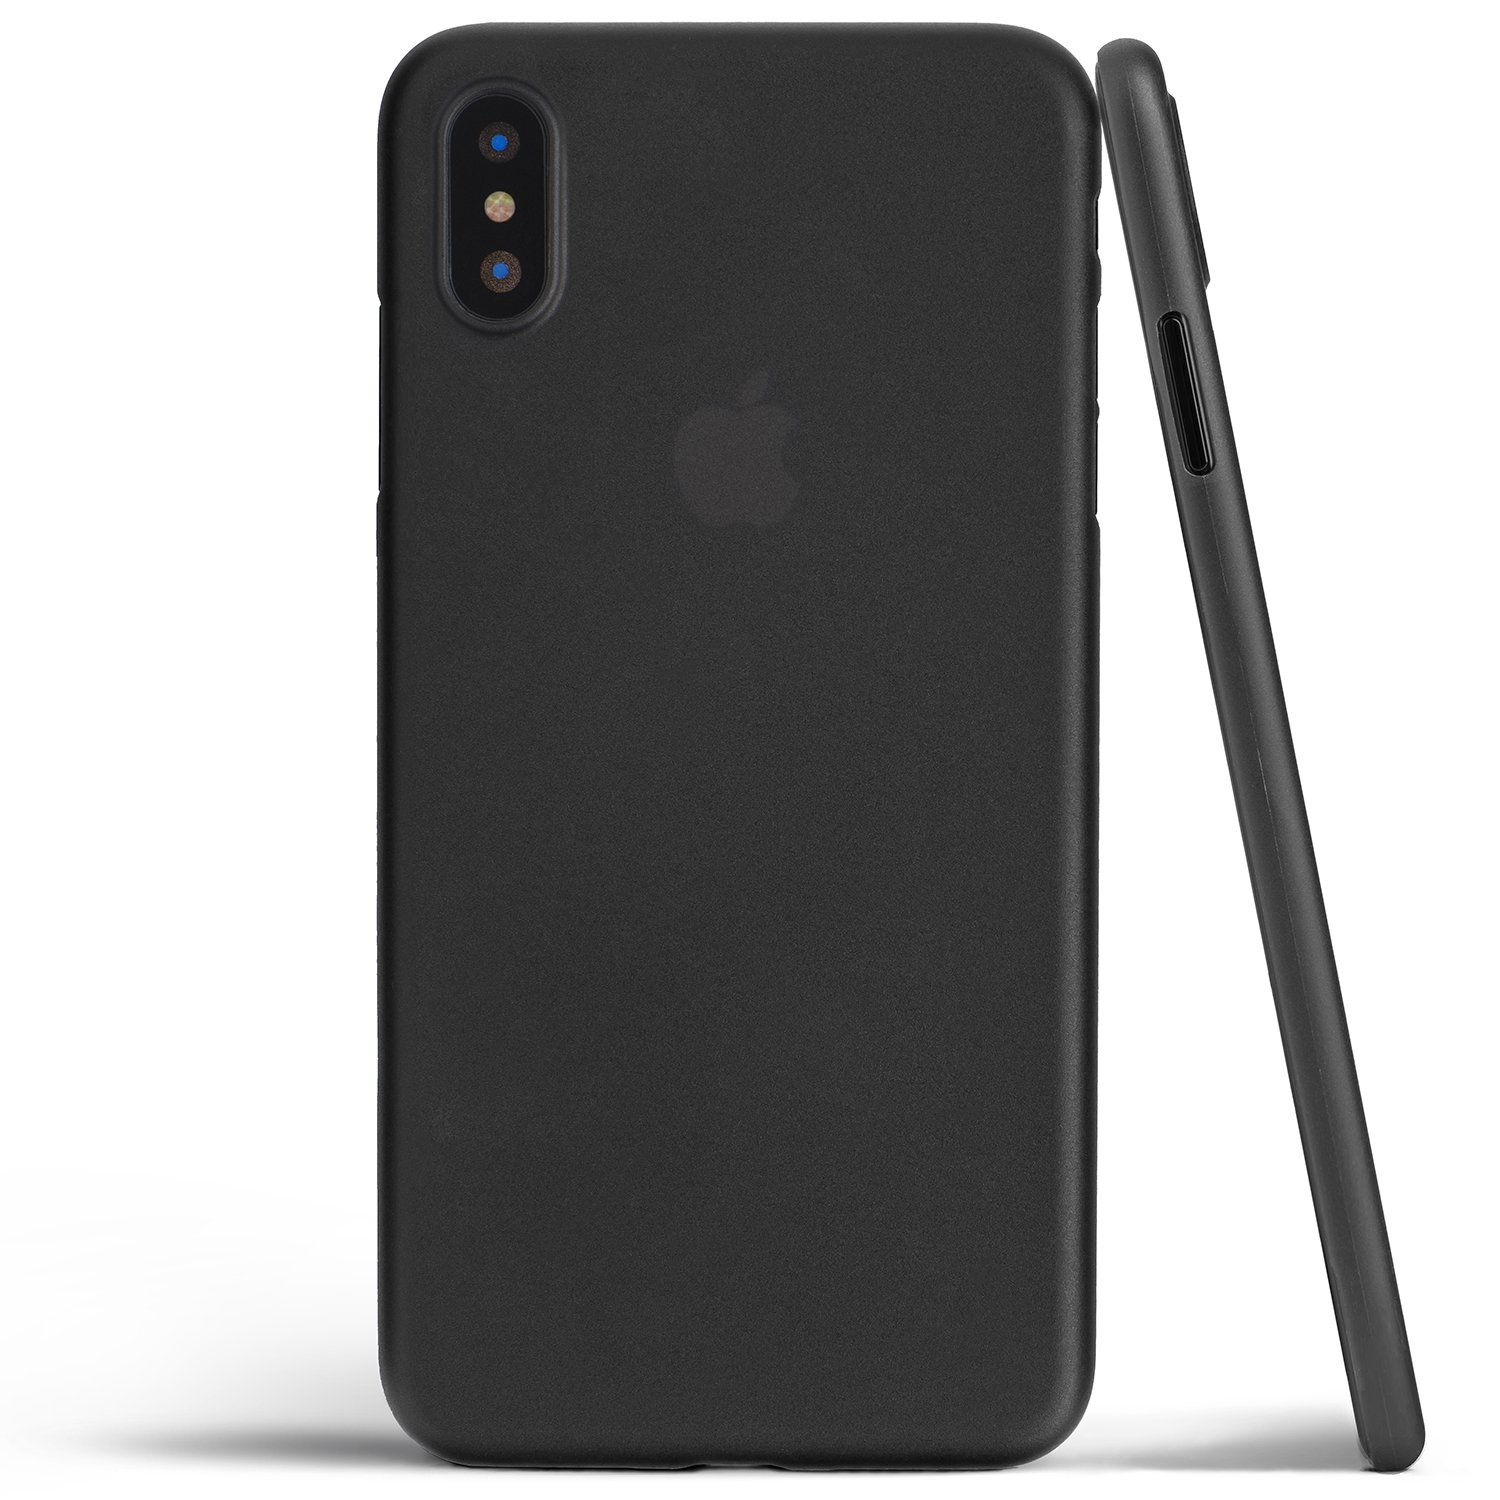 0e4dafd4b1 Amazon.com: totallee iPhone X Case, Thinnest Cover Premium Ultra Thin Light  Slim Minimal Anti-Scratch Protective - for Apple iPhone X (2017) (Matte  Black): ...